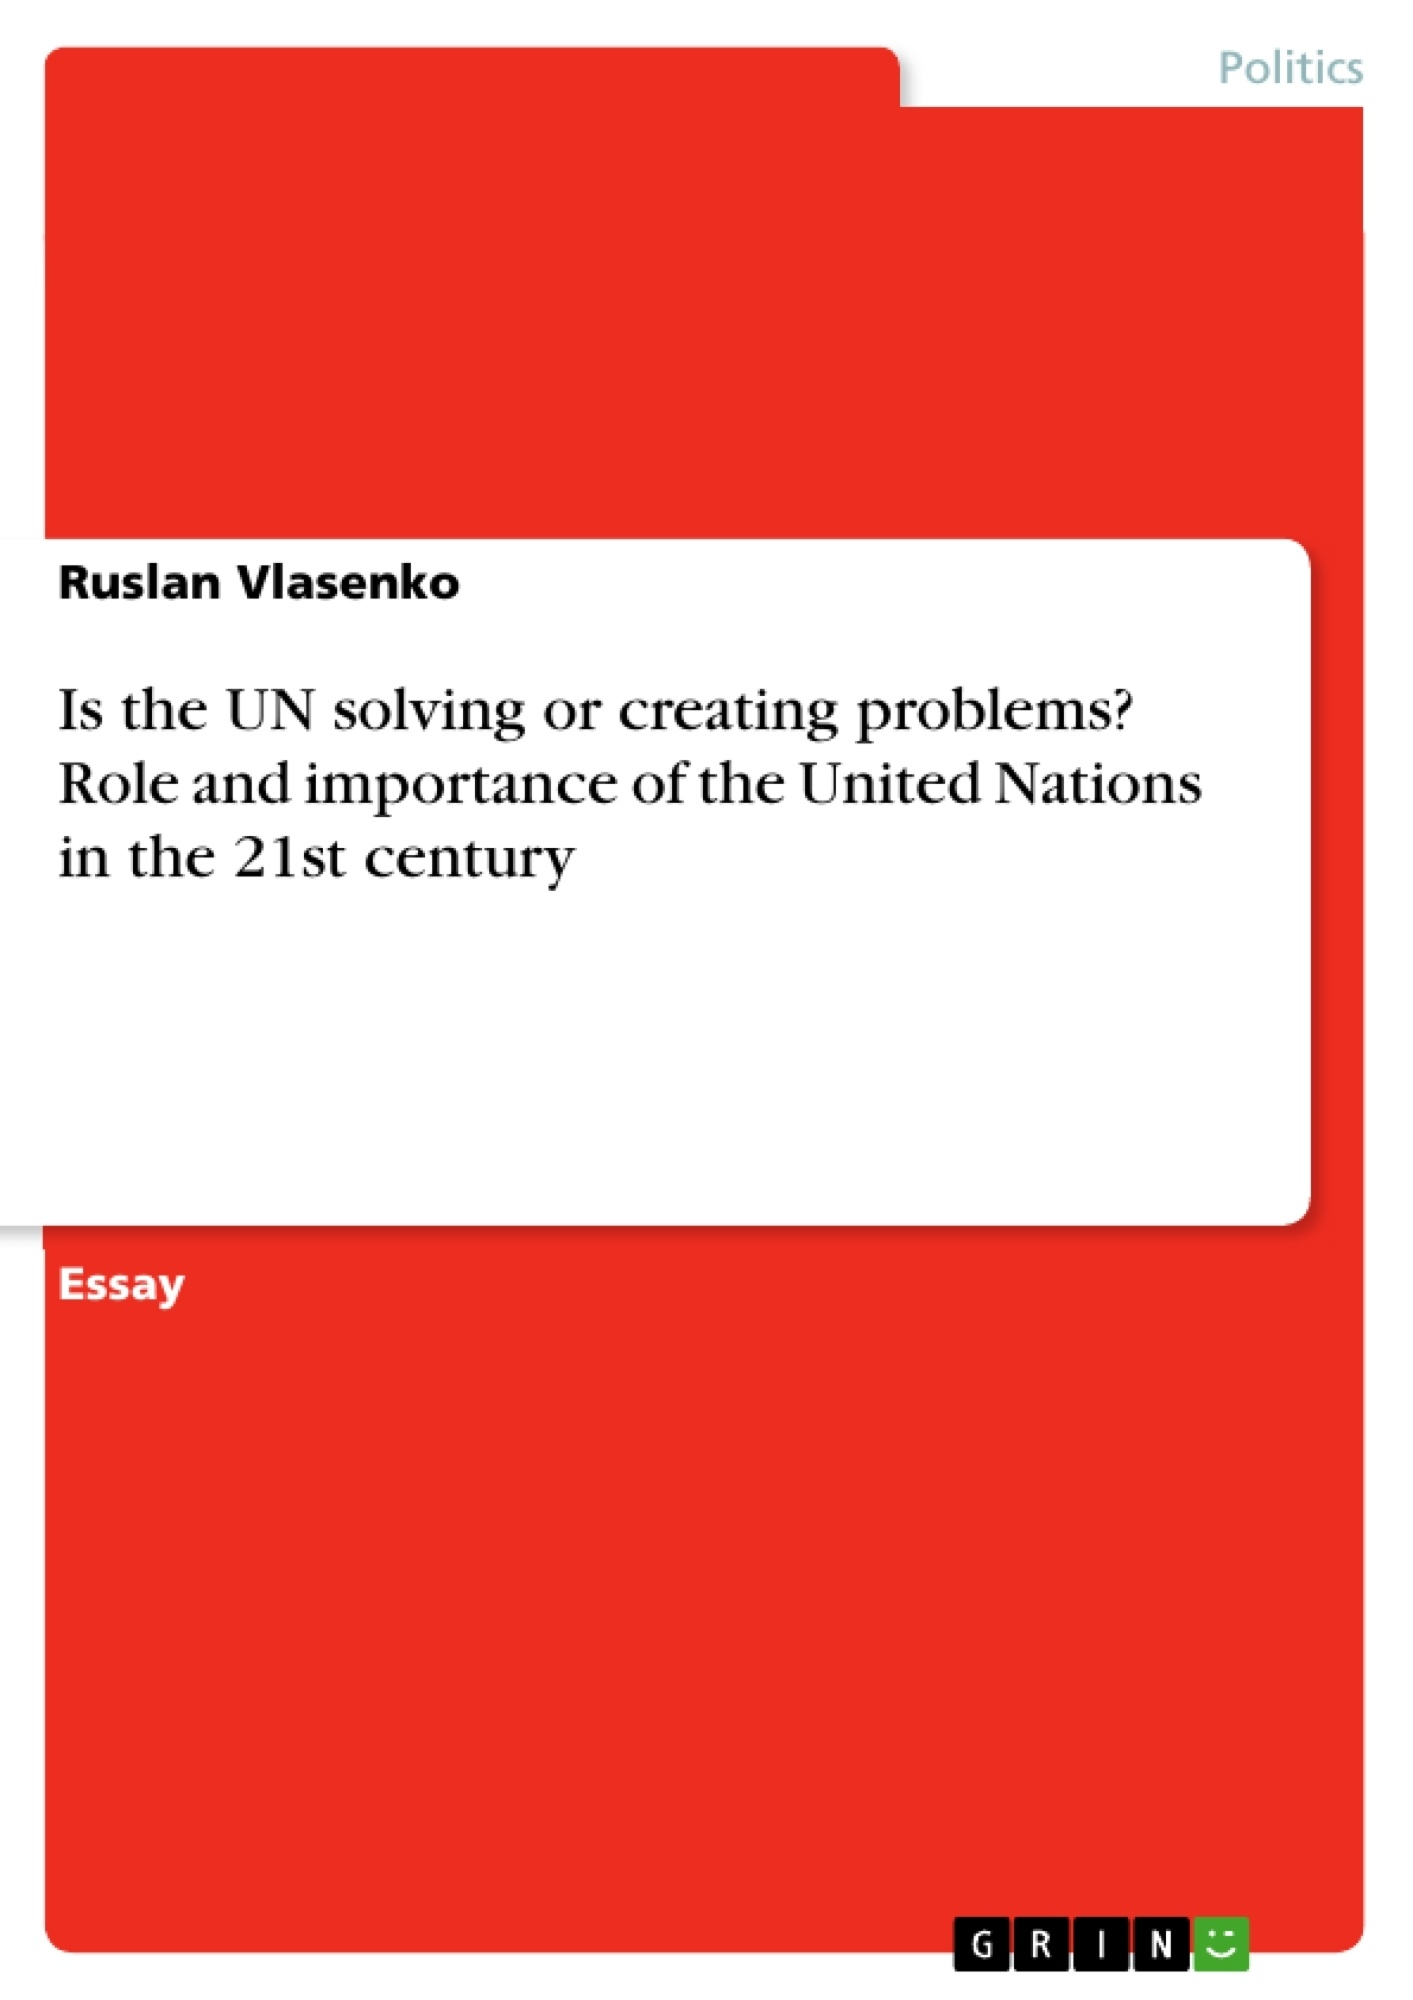 Title: Is the UN solving or creating problems? Role and importance of the United Nations in the 21st century